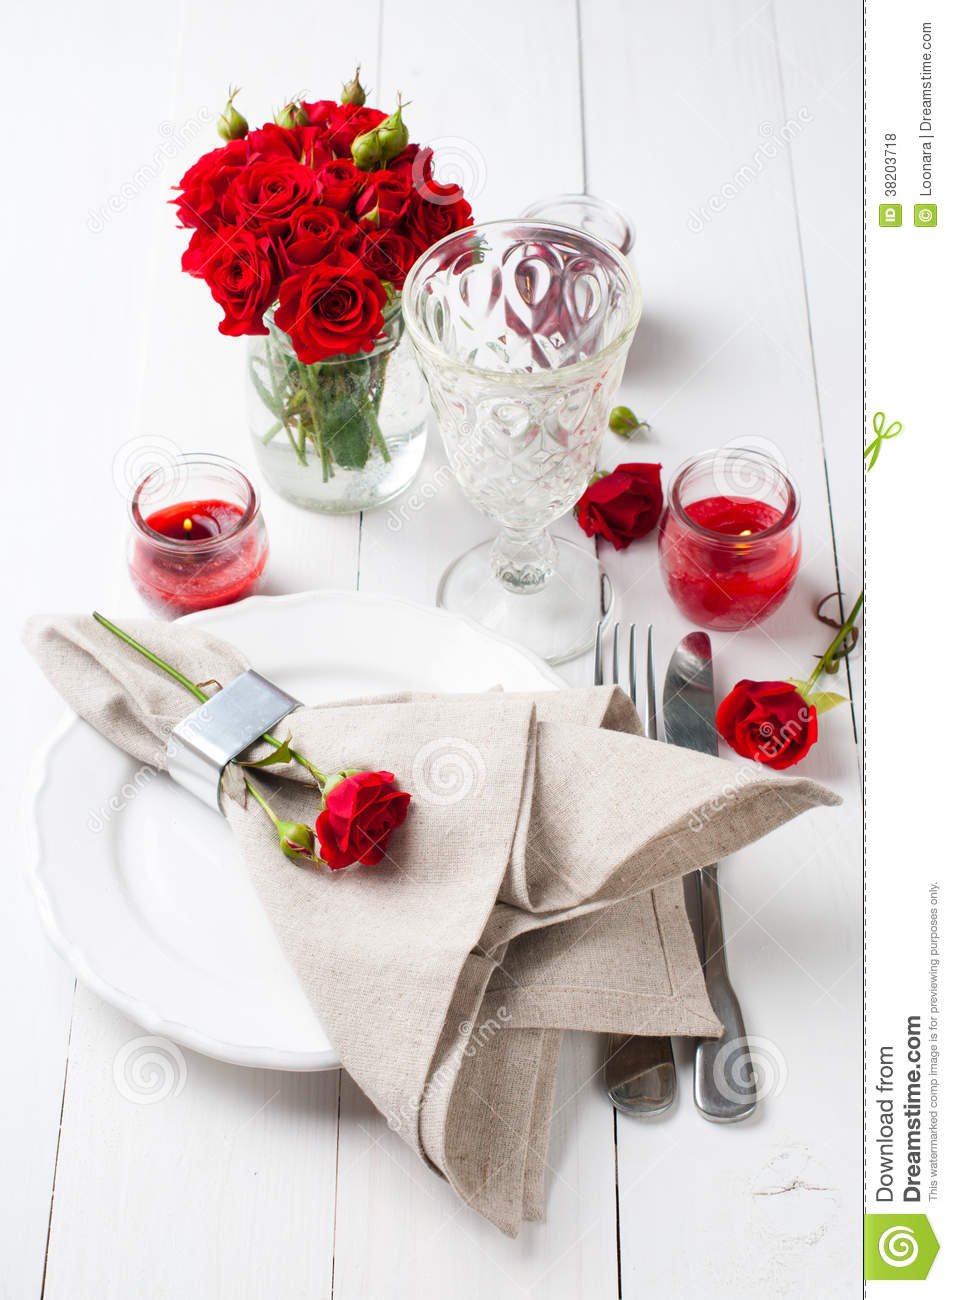 Festive Table Setting With Red Roses Royalty Free Stock